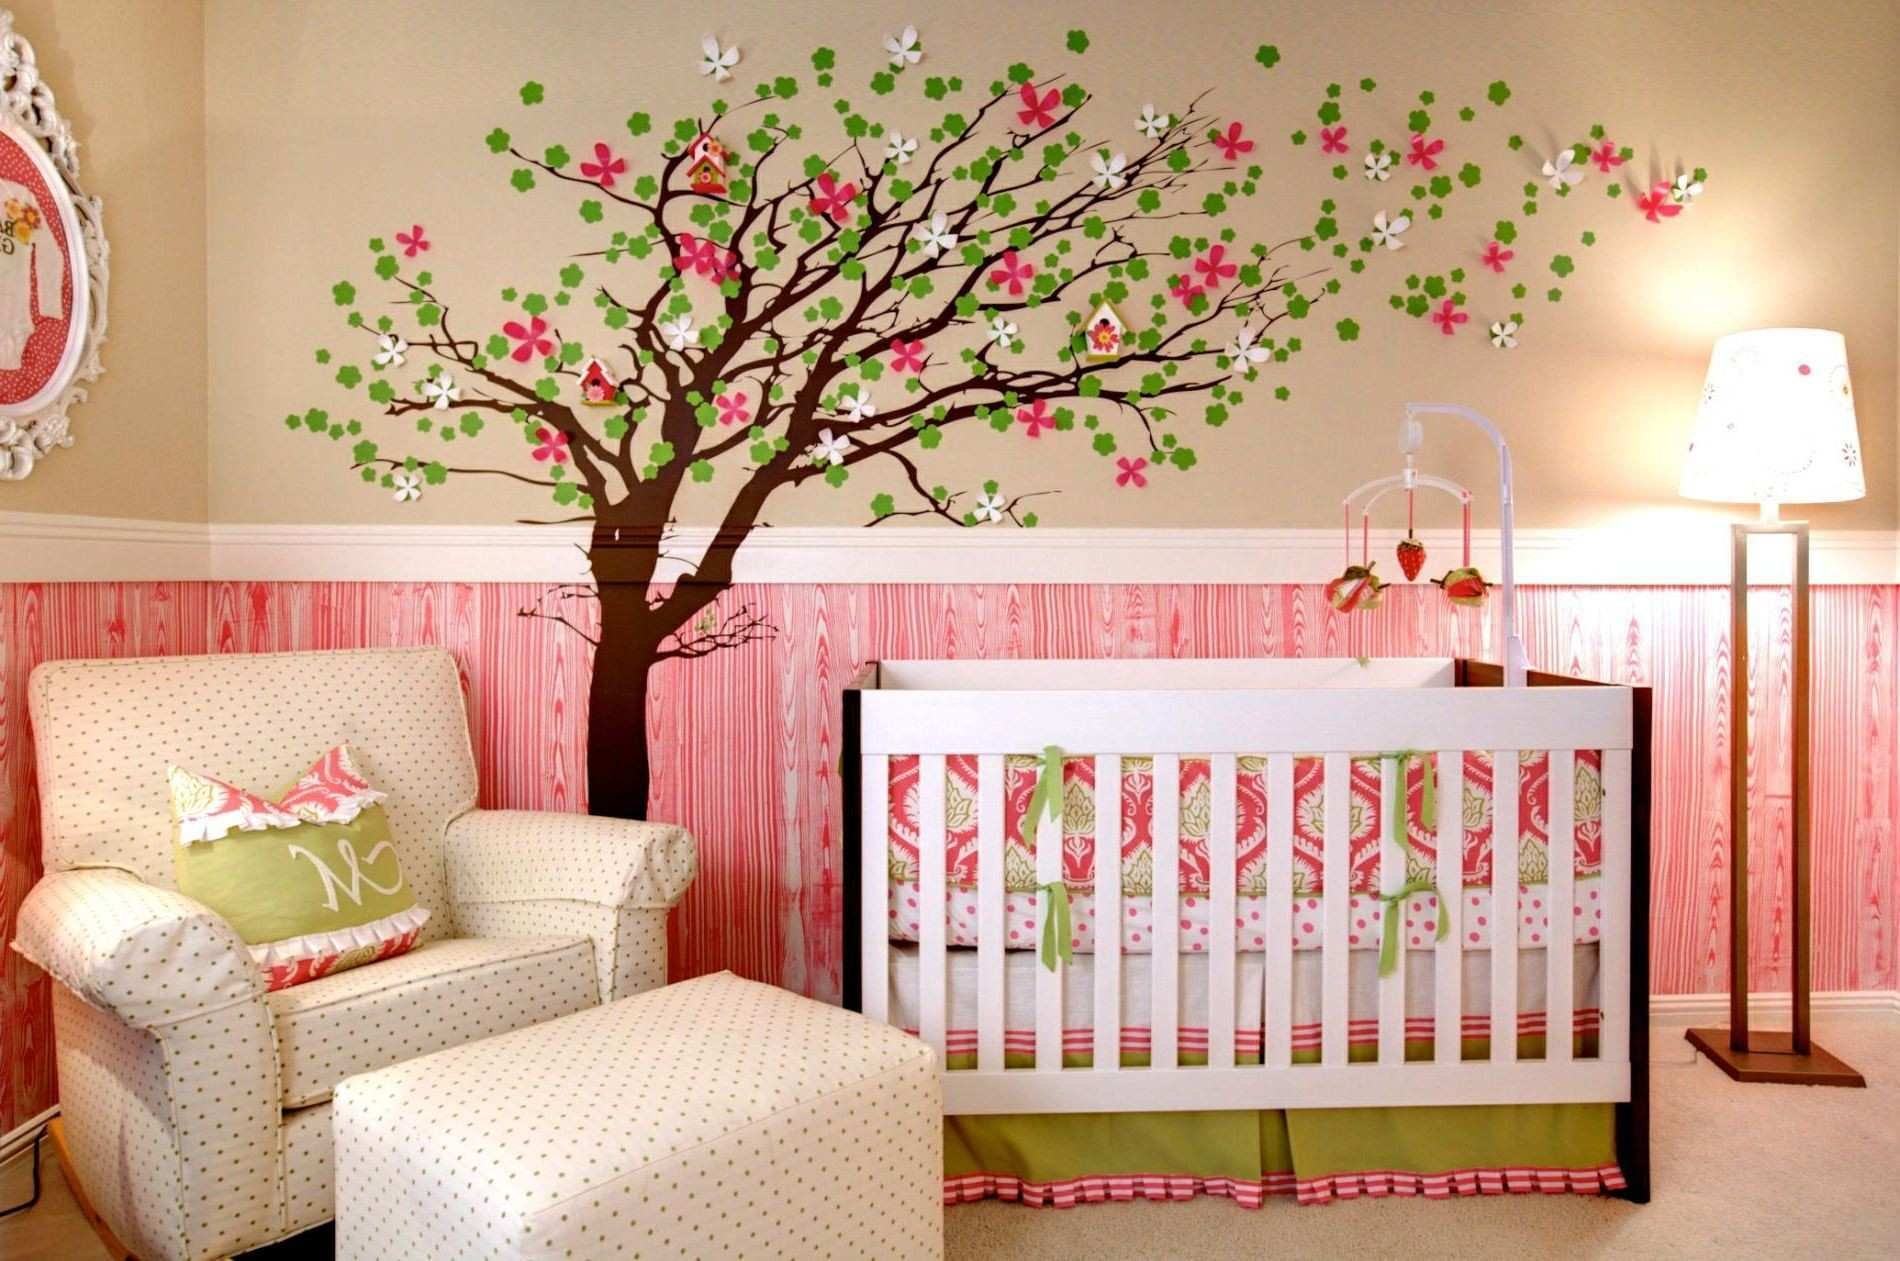 Free Download Image Beautiful Creative Wall Painting Ideas ...